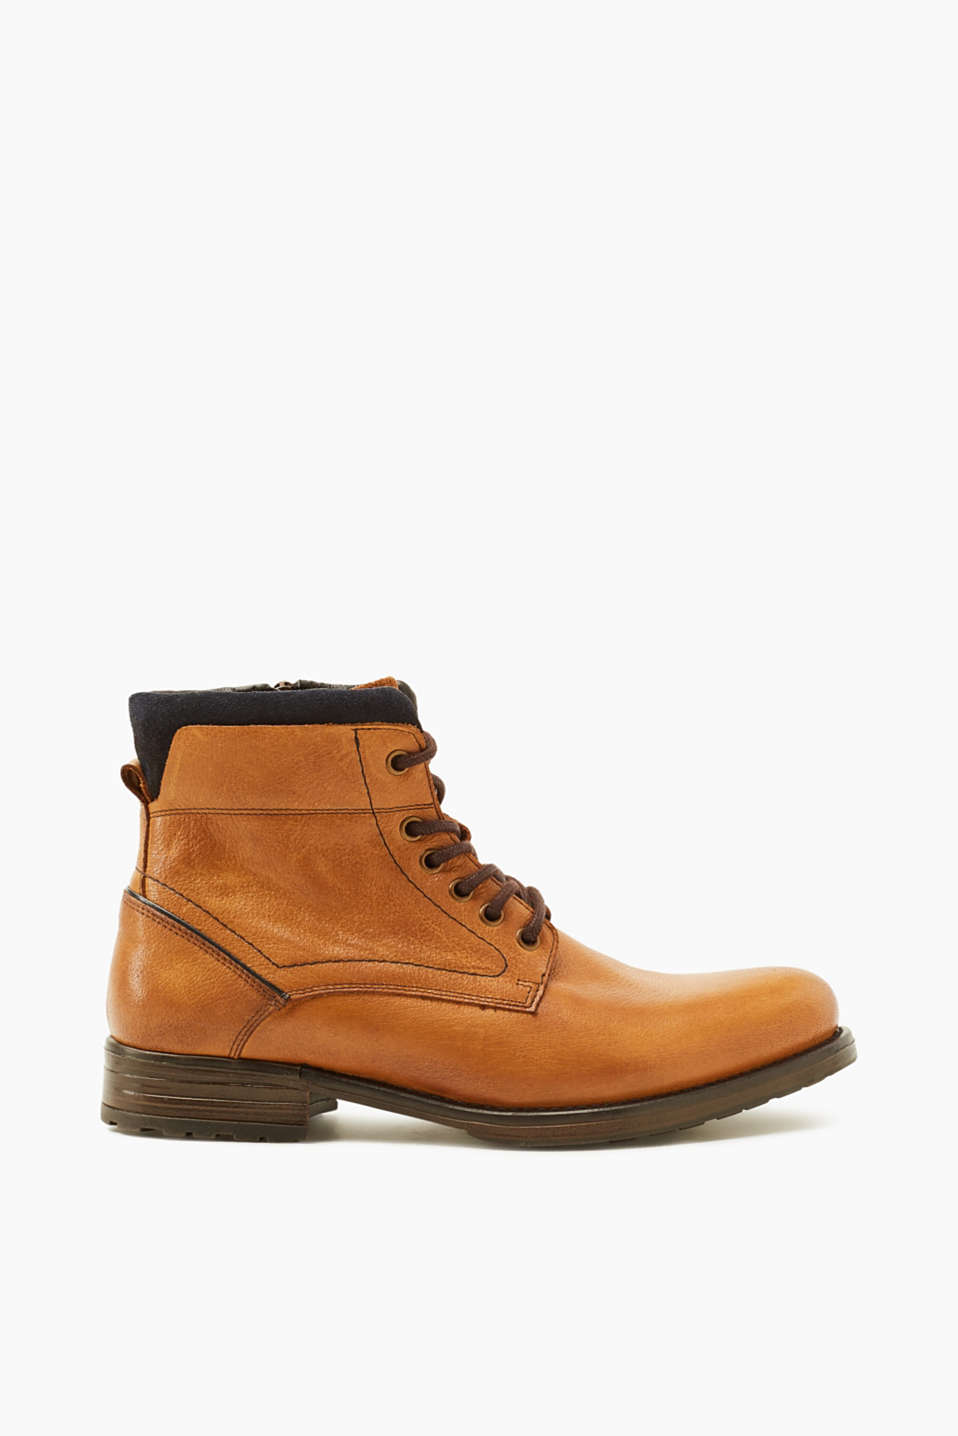 Esprit - Robust leather lace-up boots